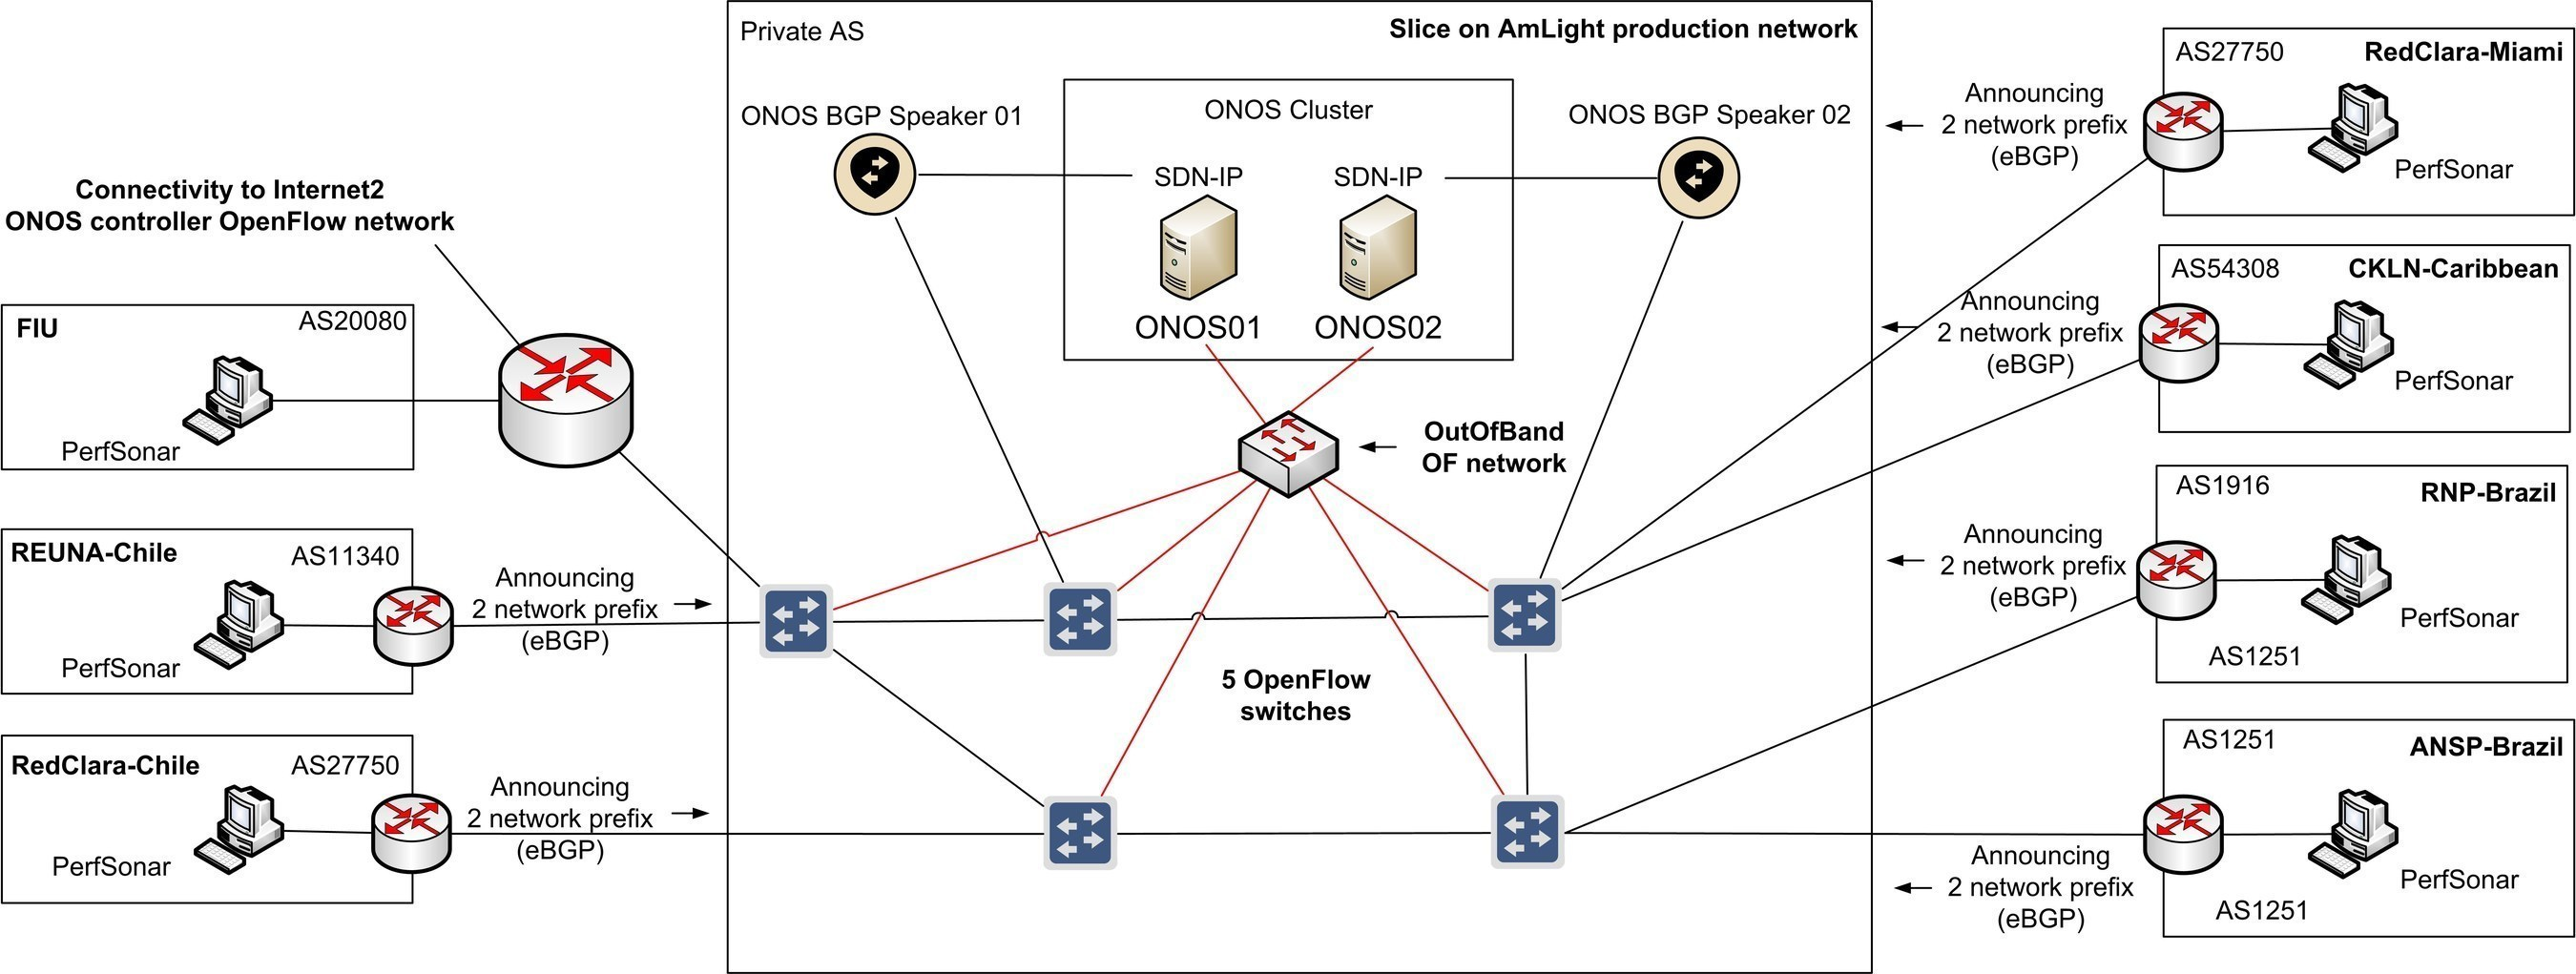 Architectural diagram of the ONOS / SDN-IP deployment on FIU/AmLight network